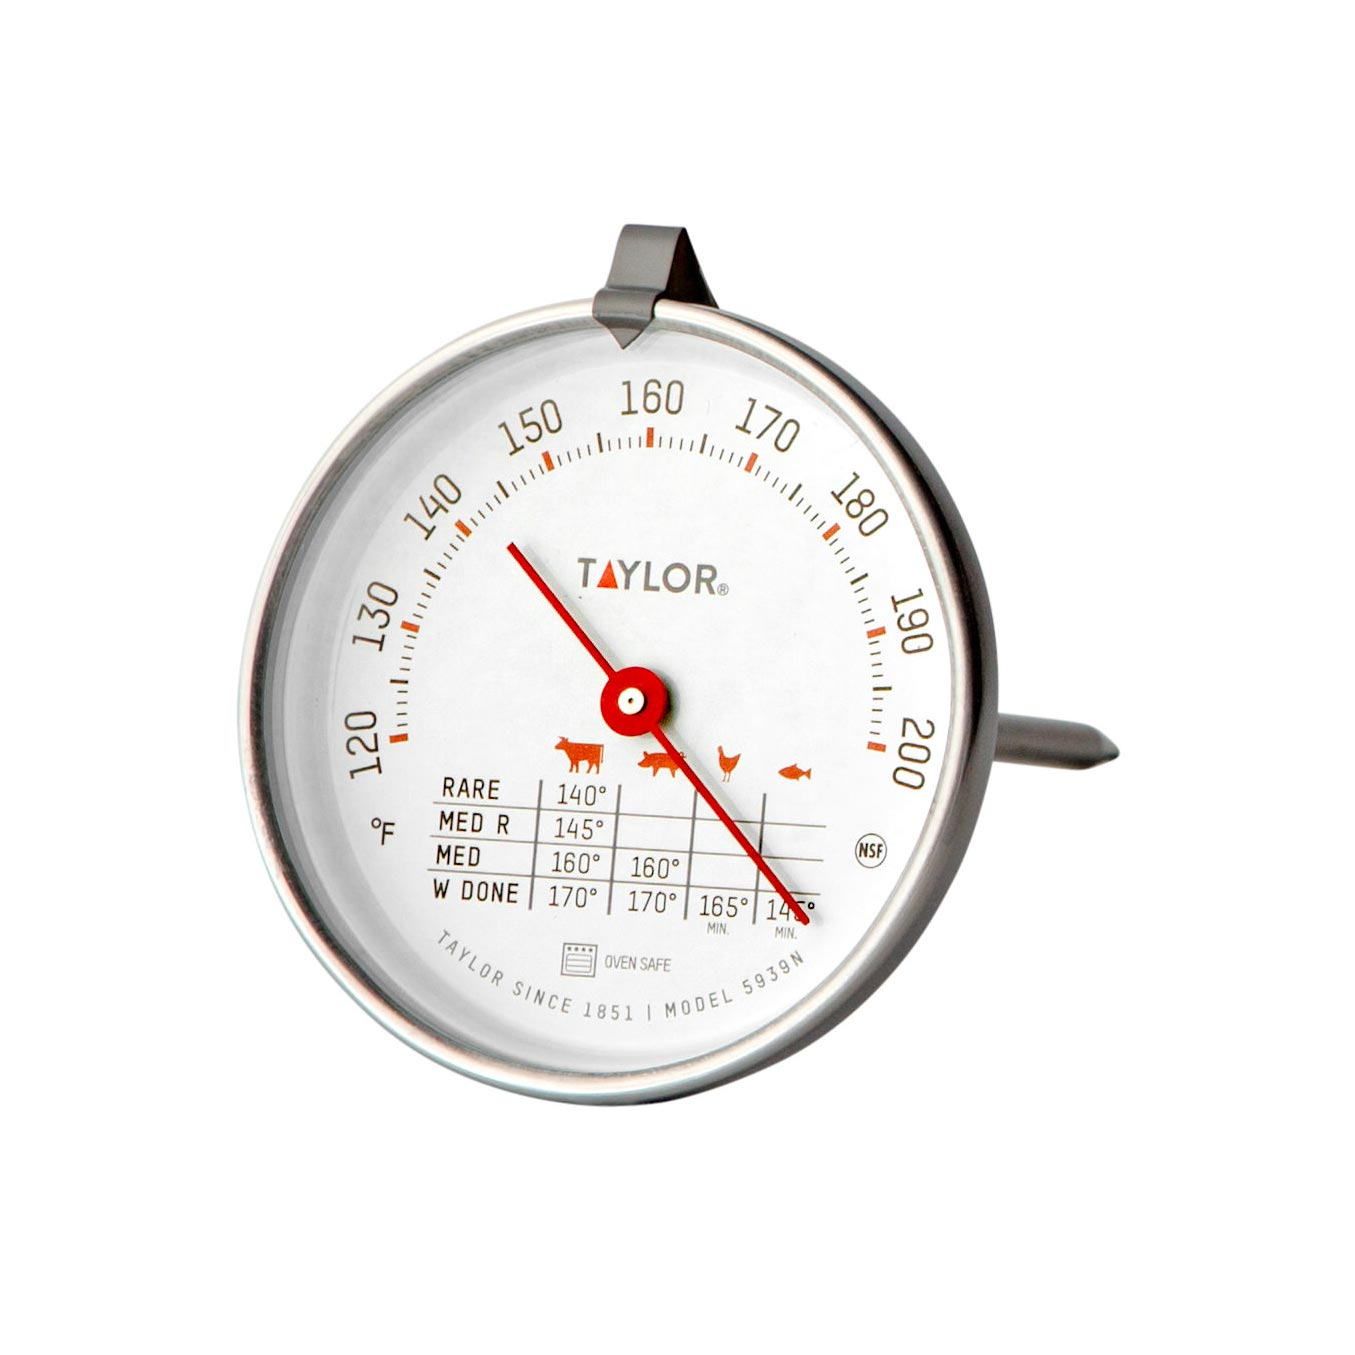 Taylor Precision 5939N meat thermometer